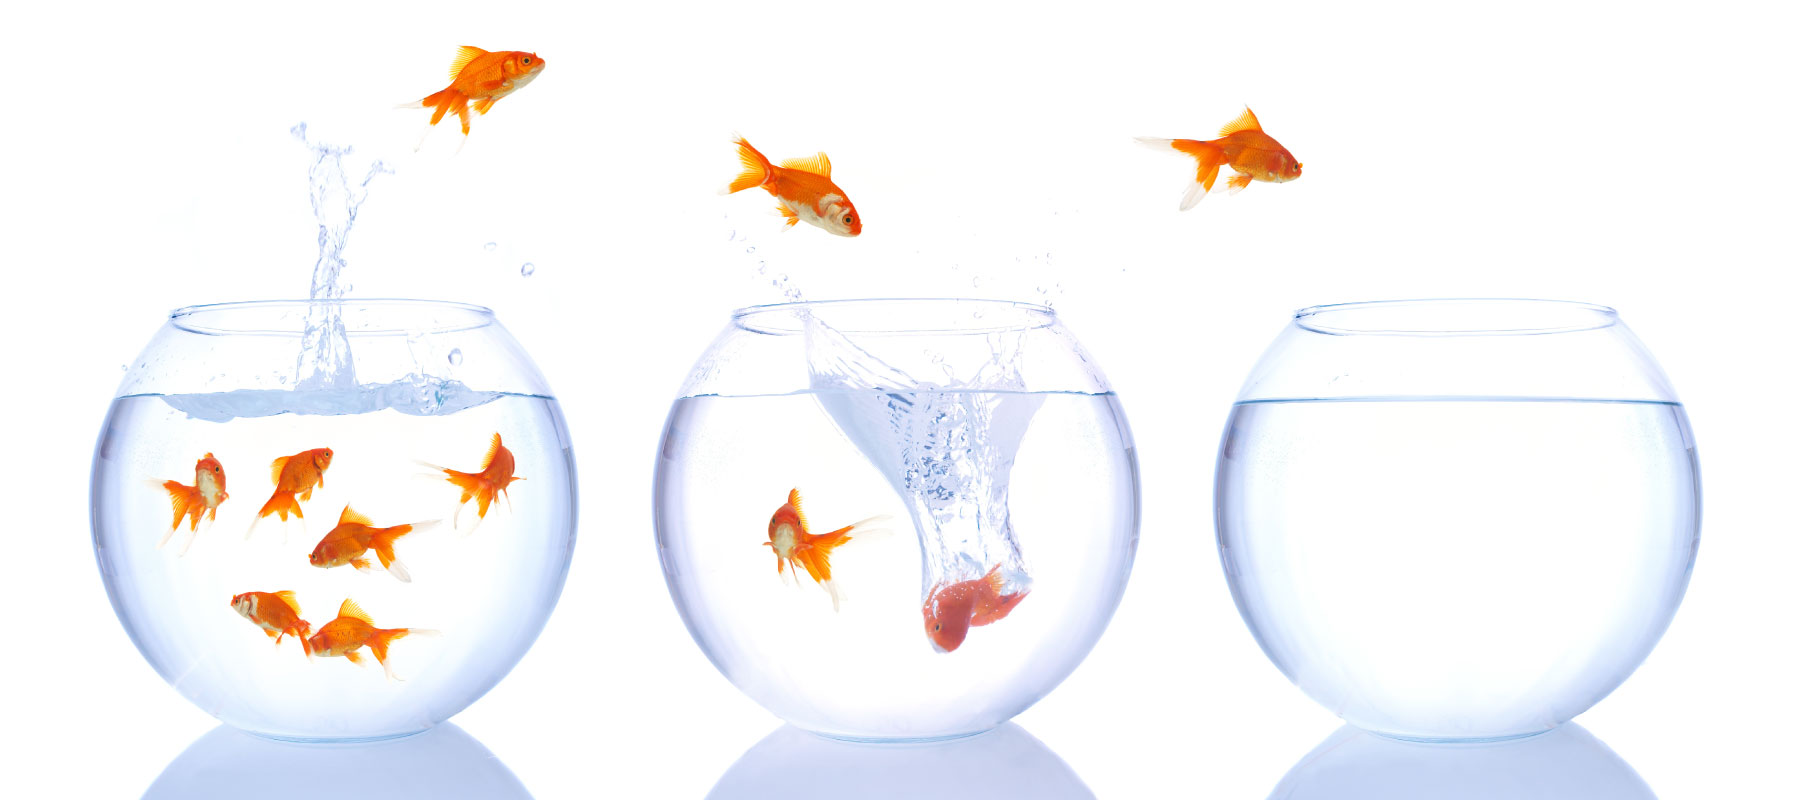 MCM2 | Digital Marketing Agency Cheshire | Goldfish bowls